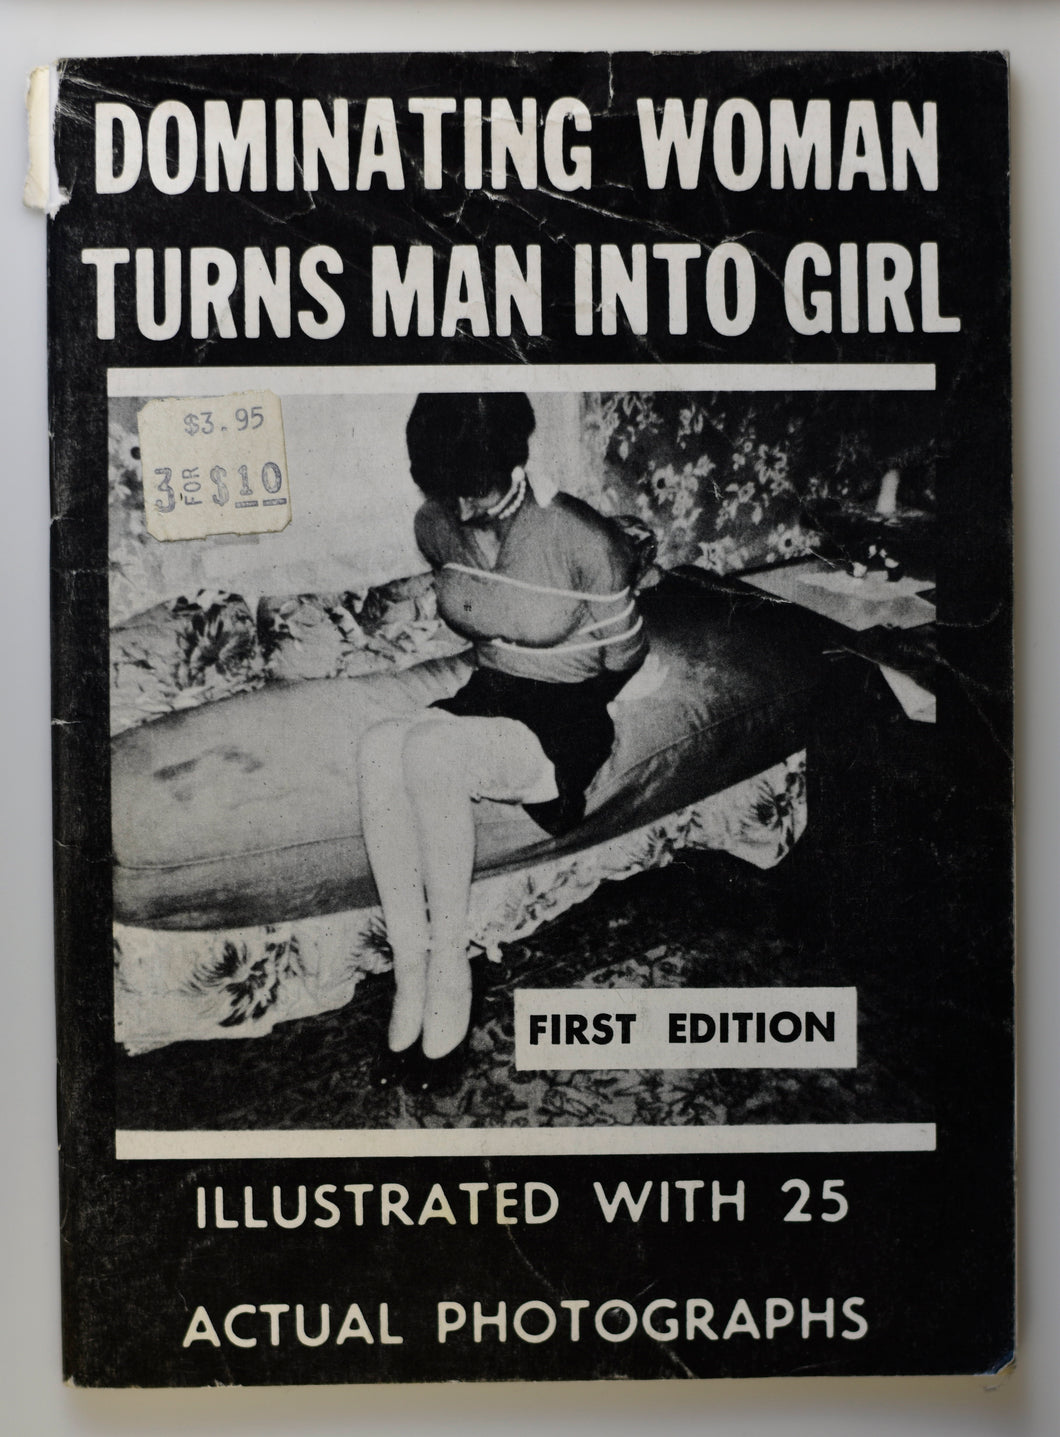 DOMINATING WOMAN TURNS MAN INTO GIRL FIRST EDITION COVER